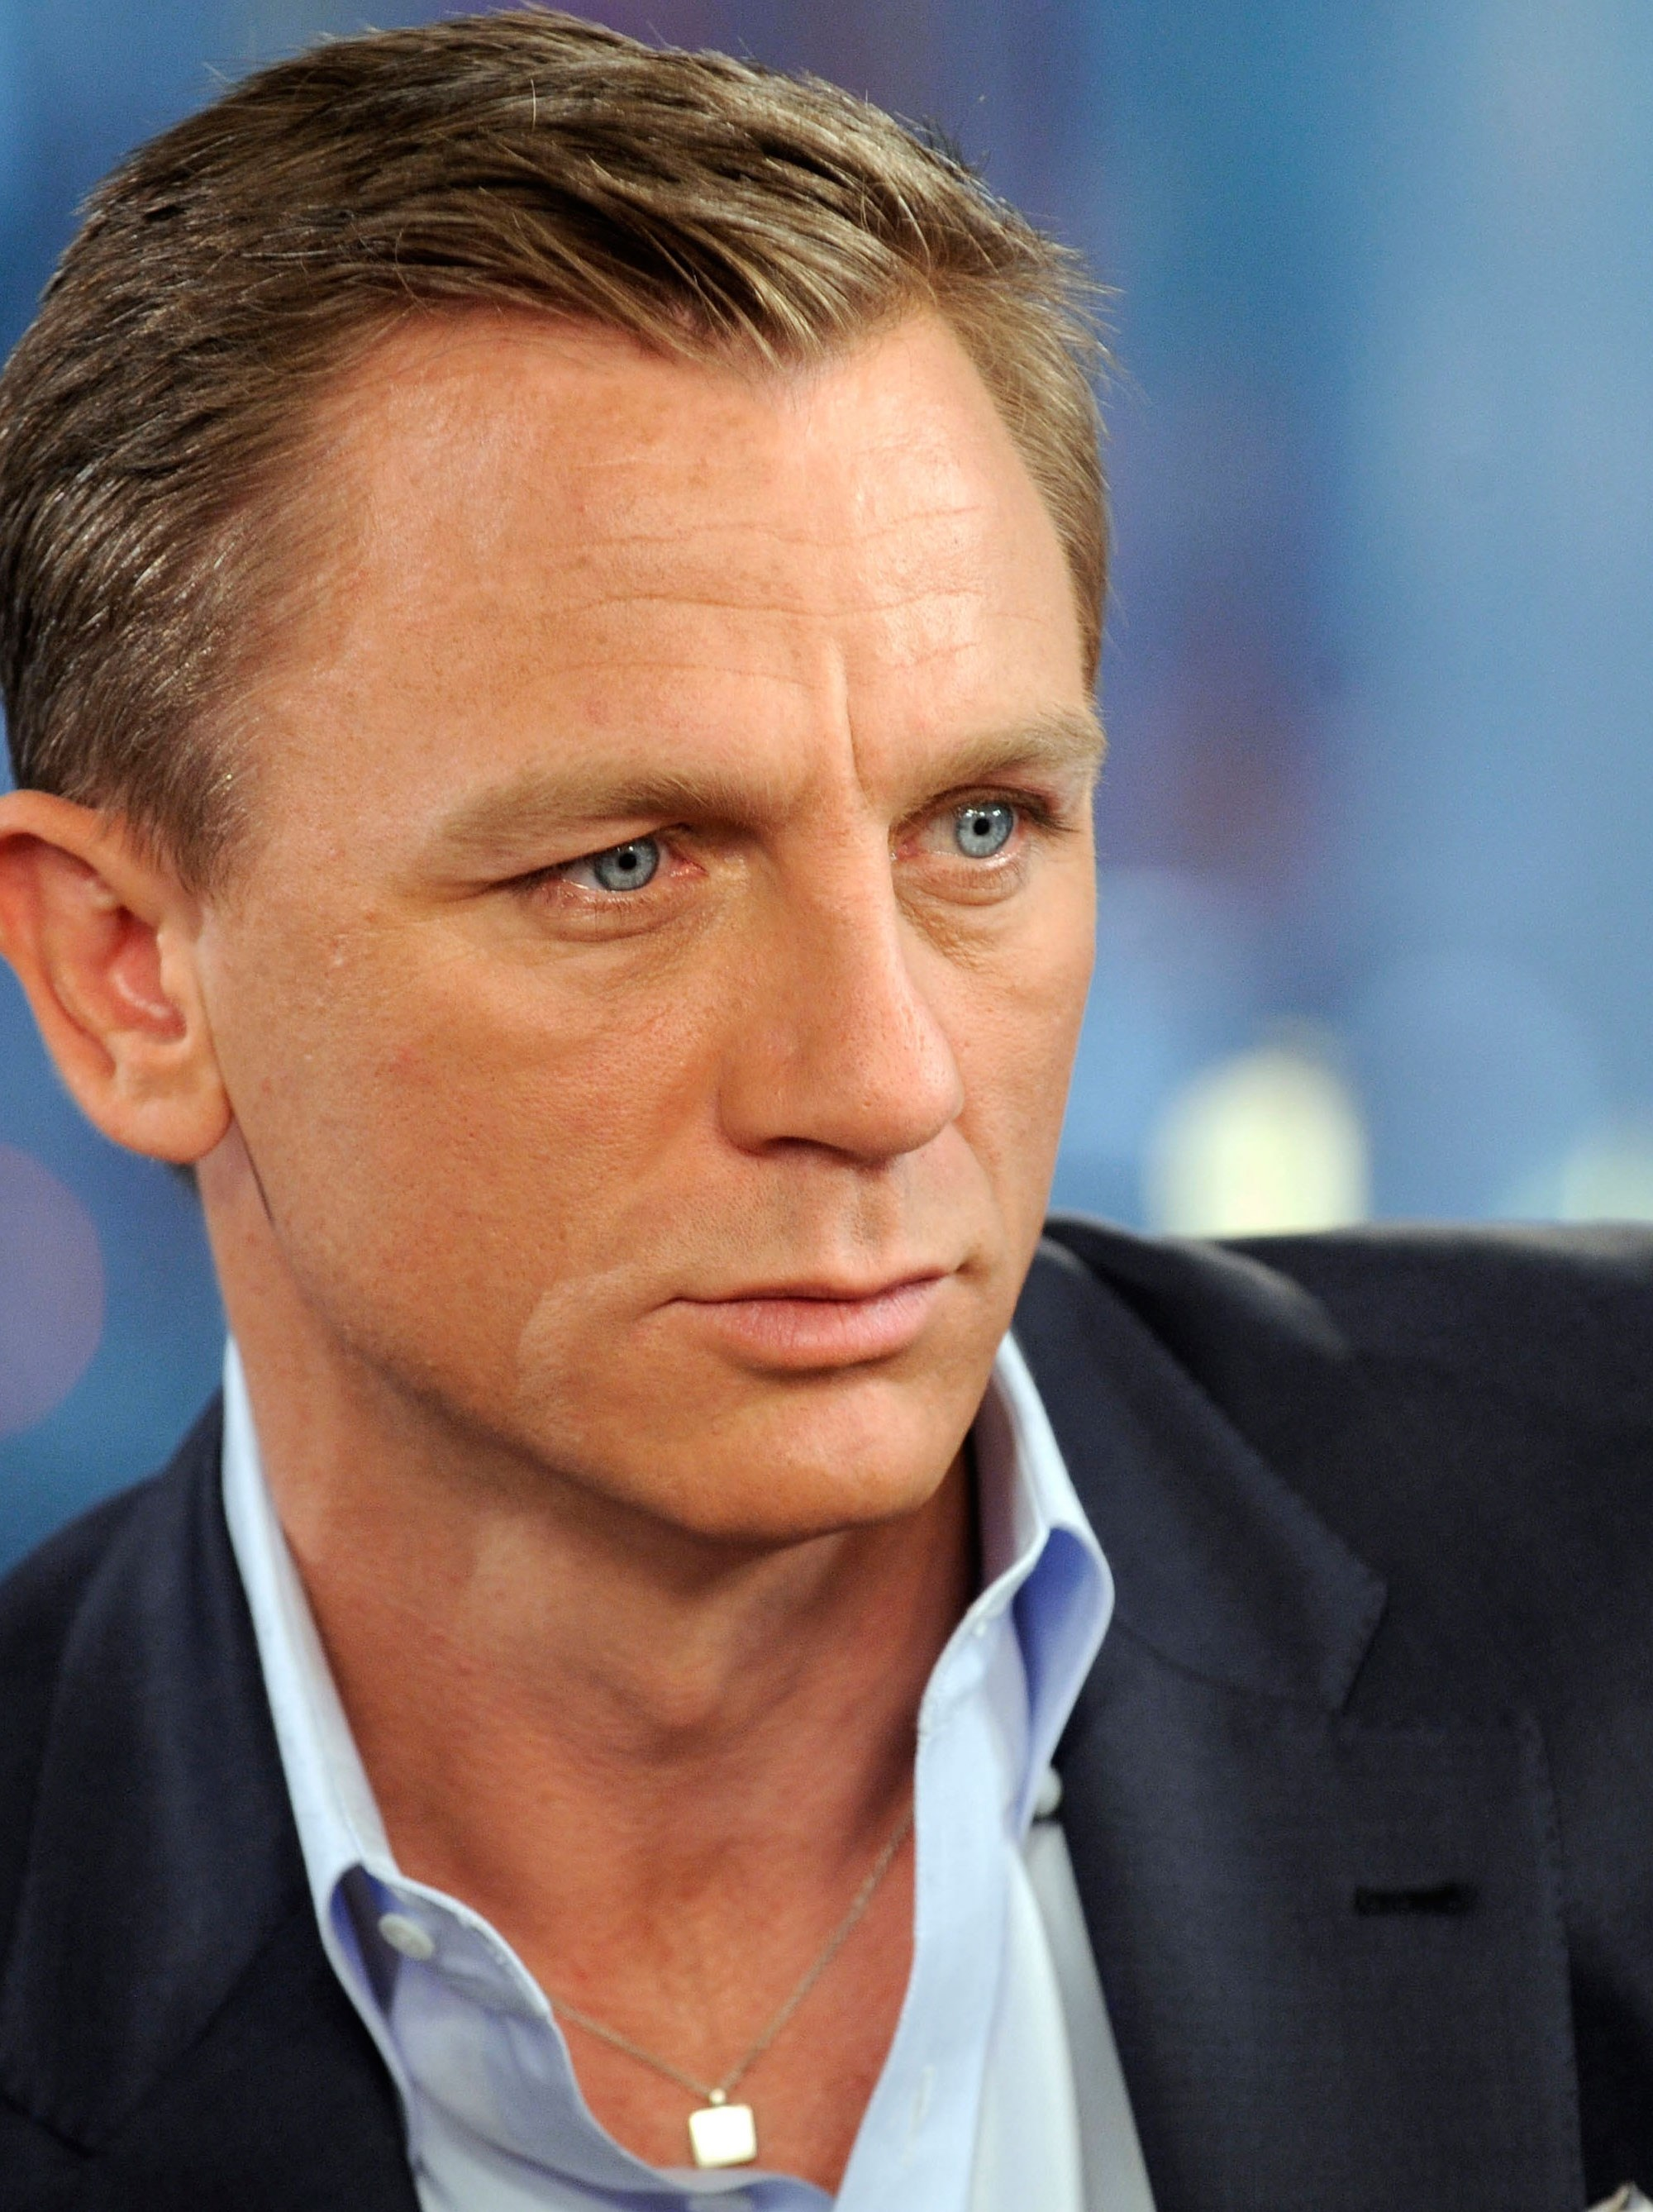 Daniel Craig | Known p...